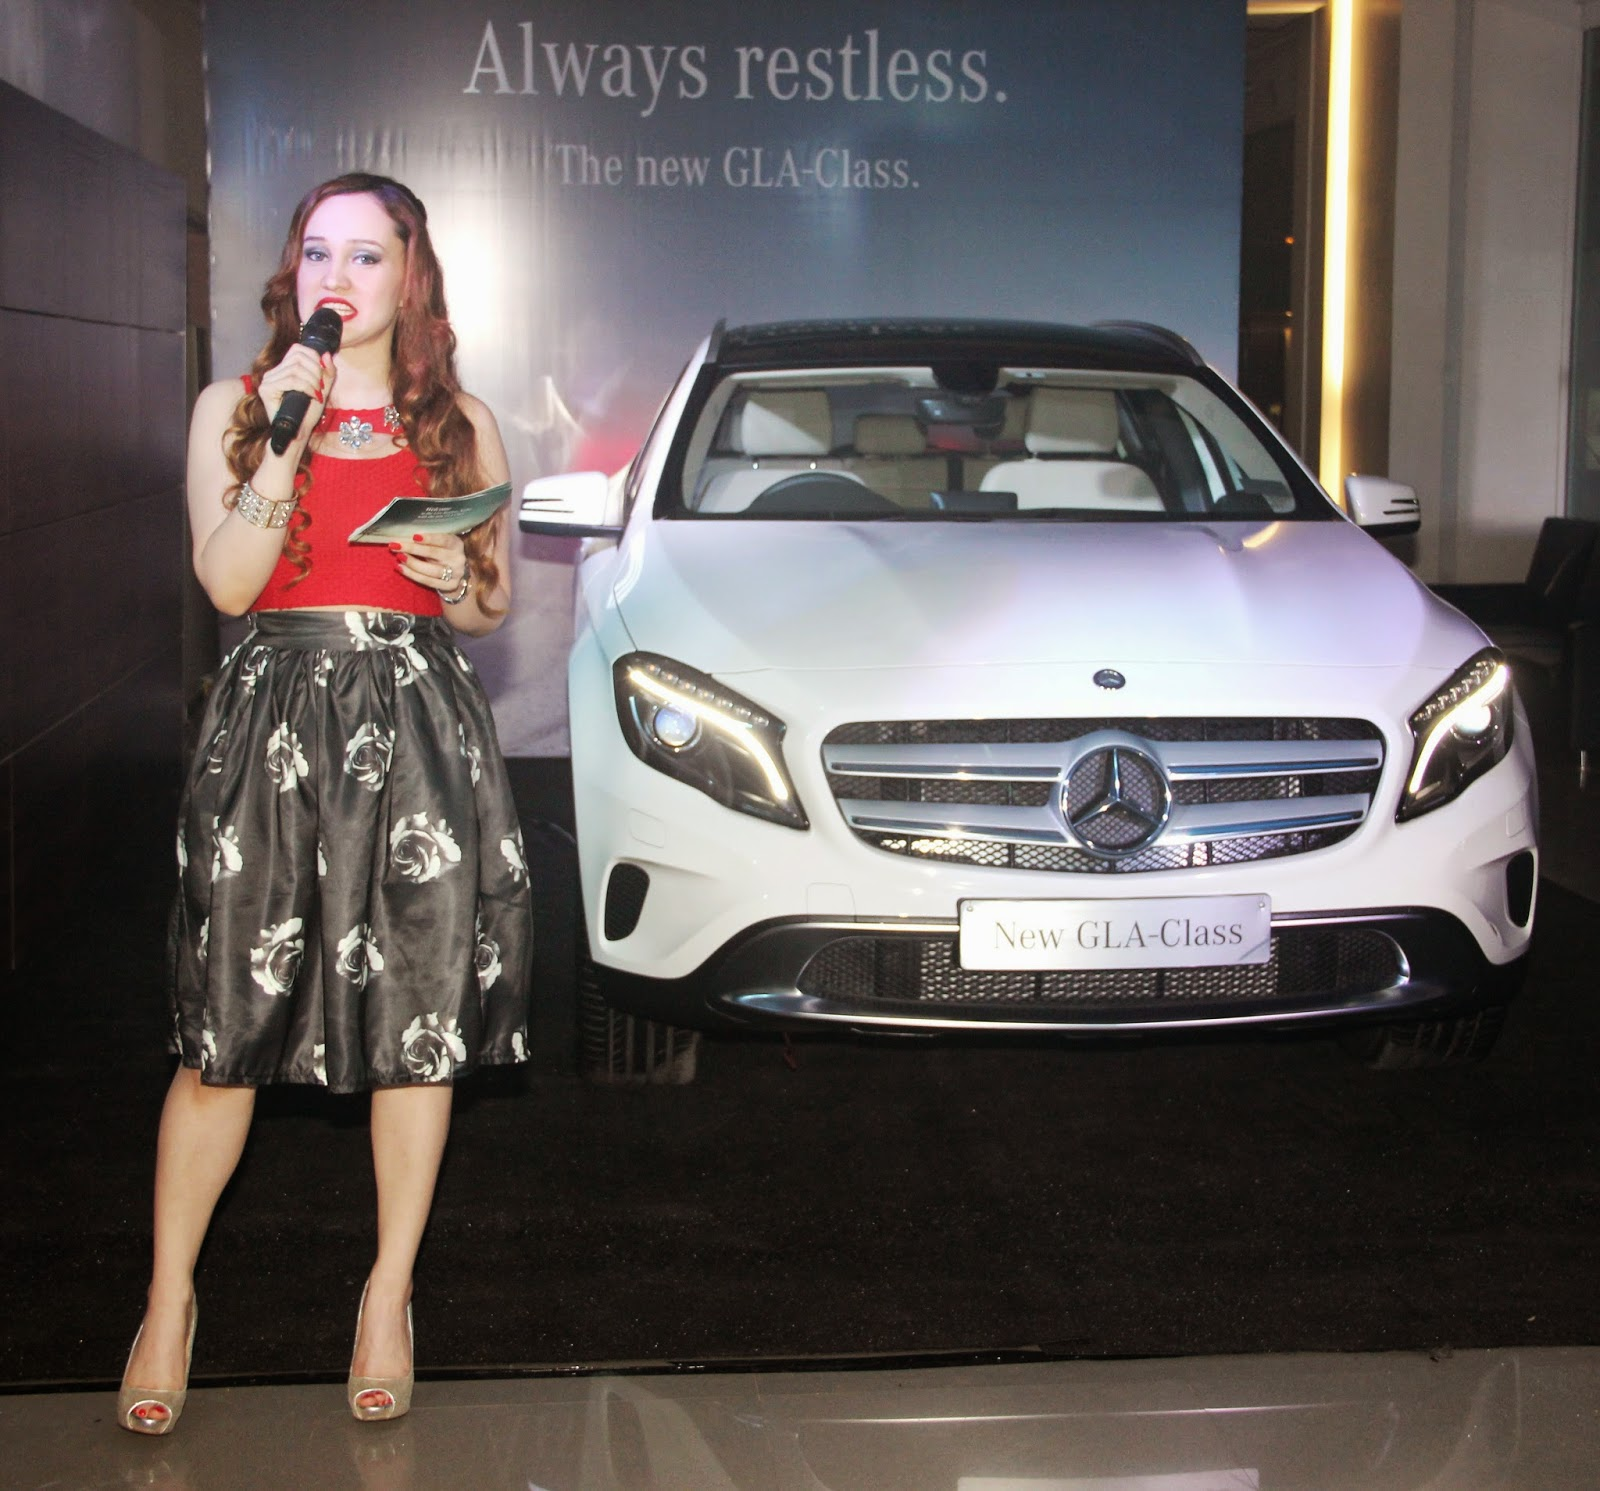 Stephanie Timmins hosting the Mercedes Benz GLA-Class Preview Event